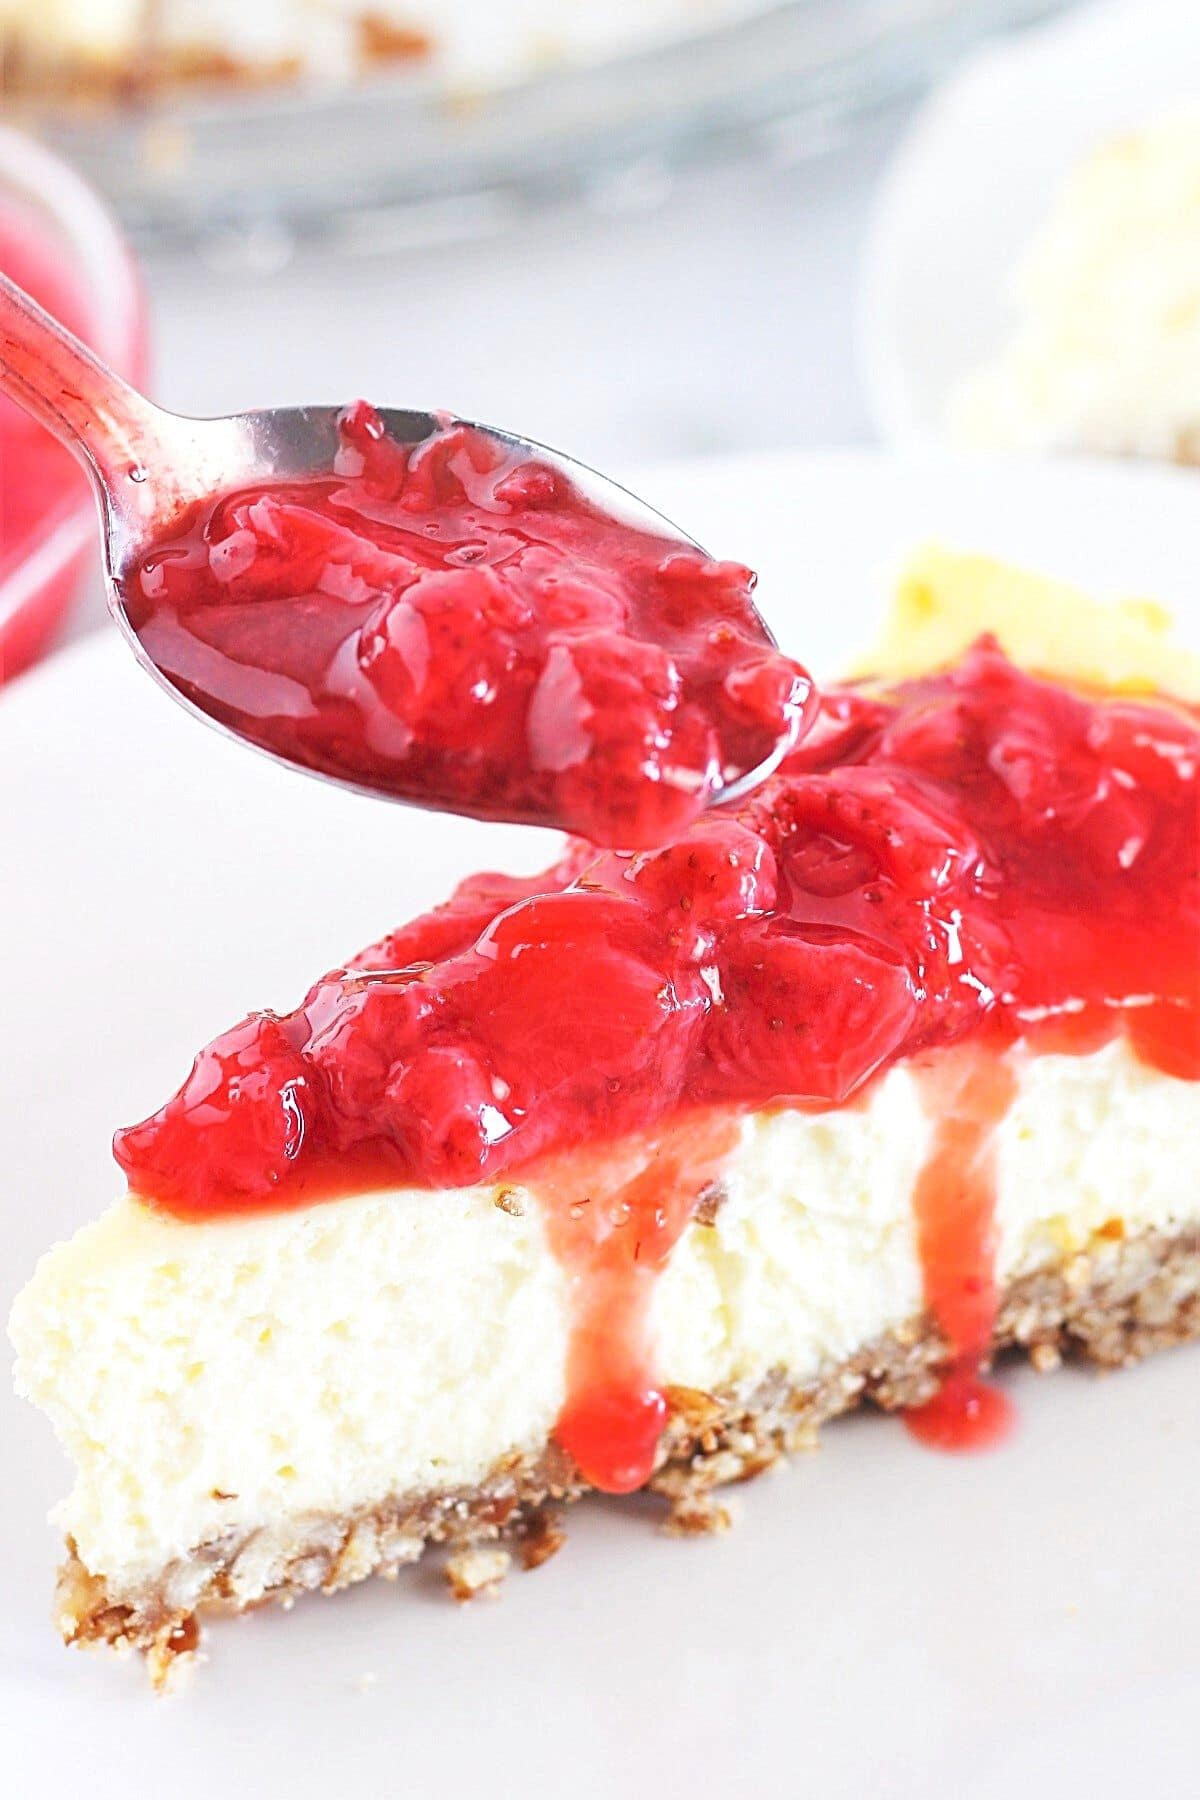 piece of cheesecake on a white plate with a spoonful of homemade fresh strawberry sauce being put on top